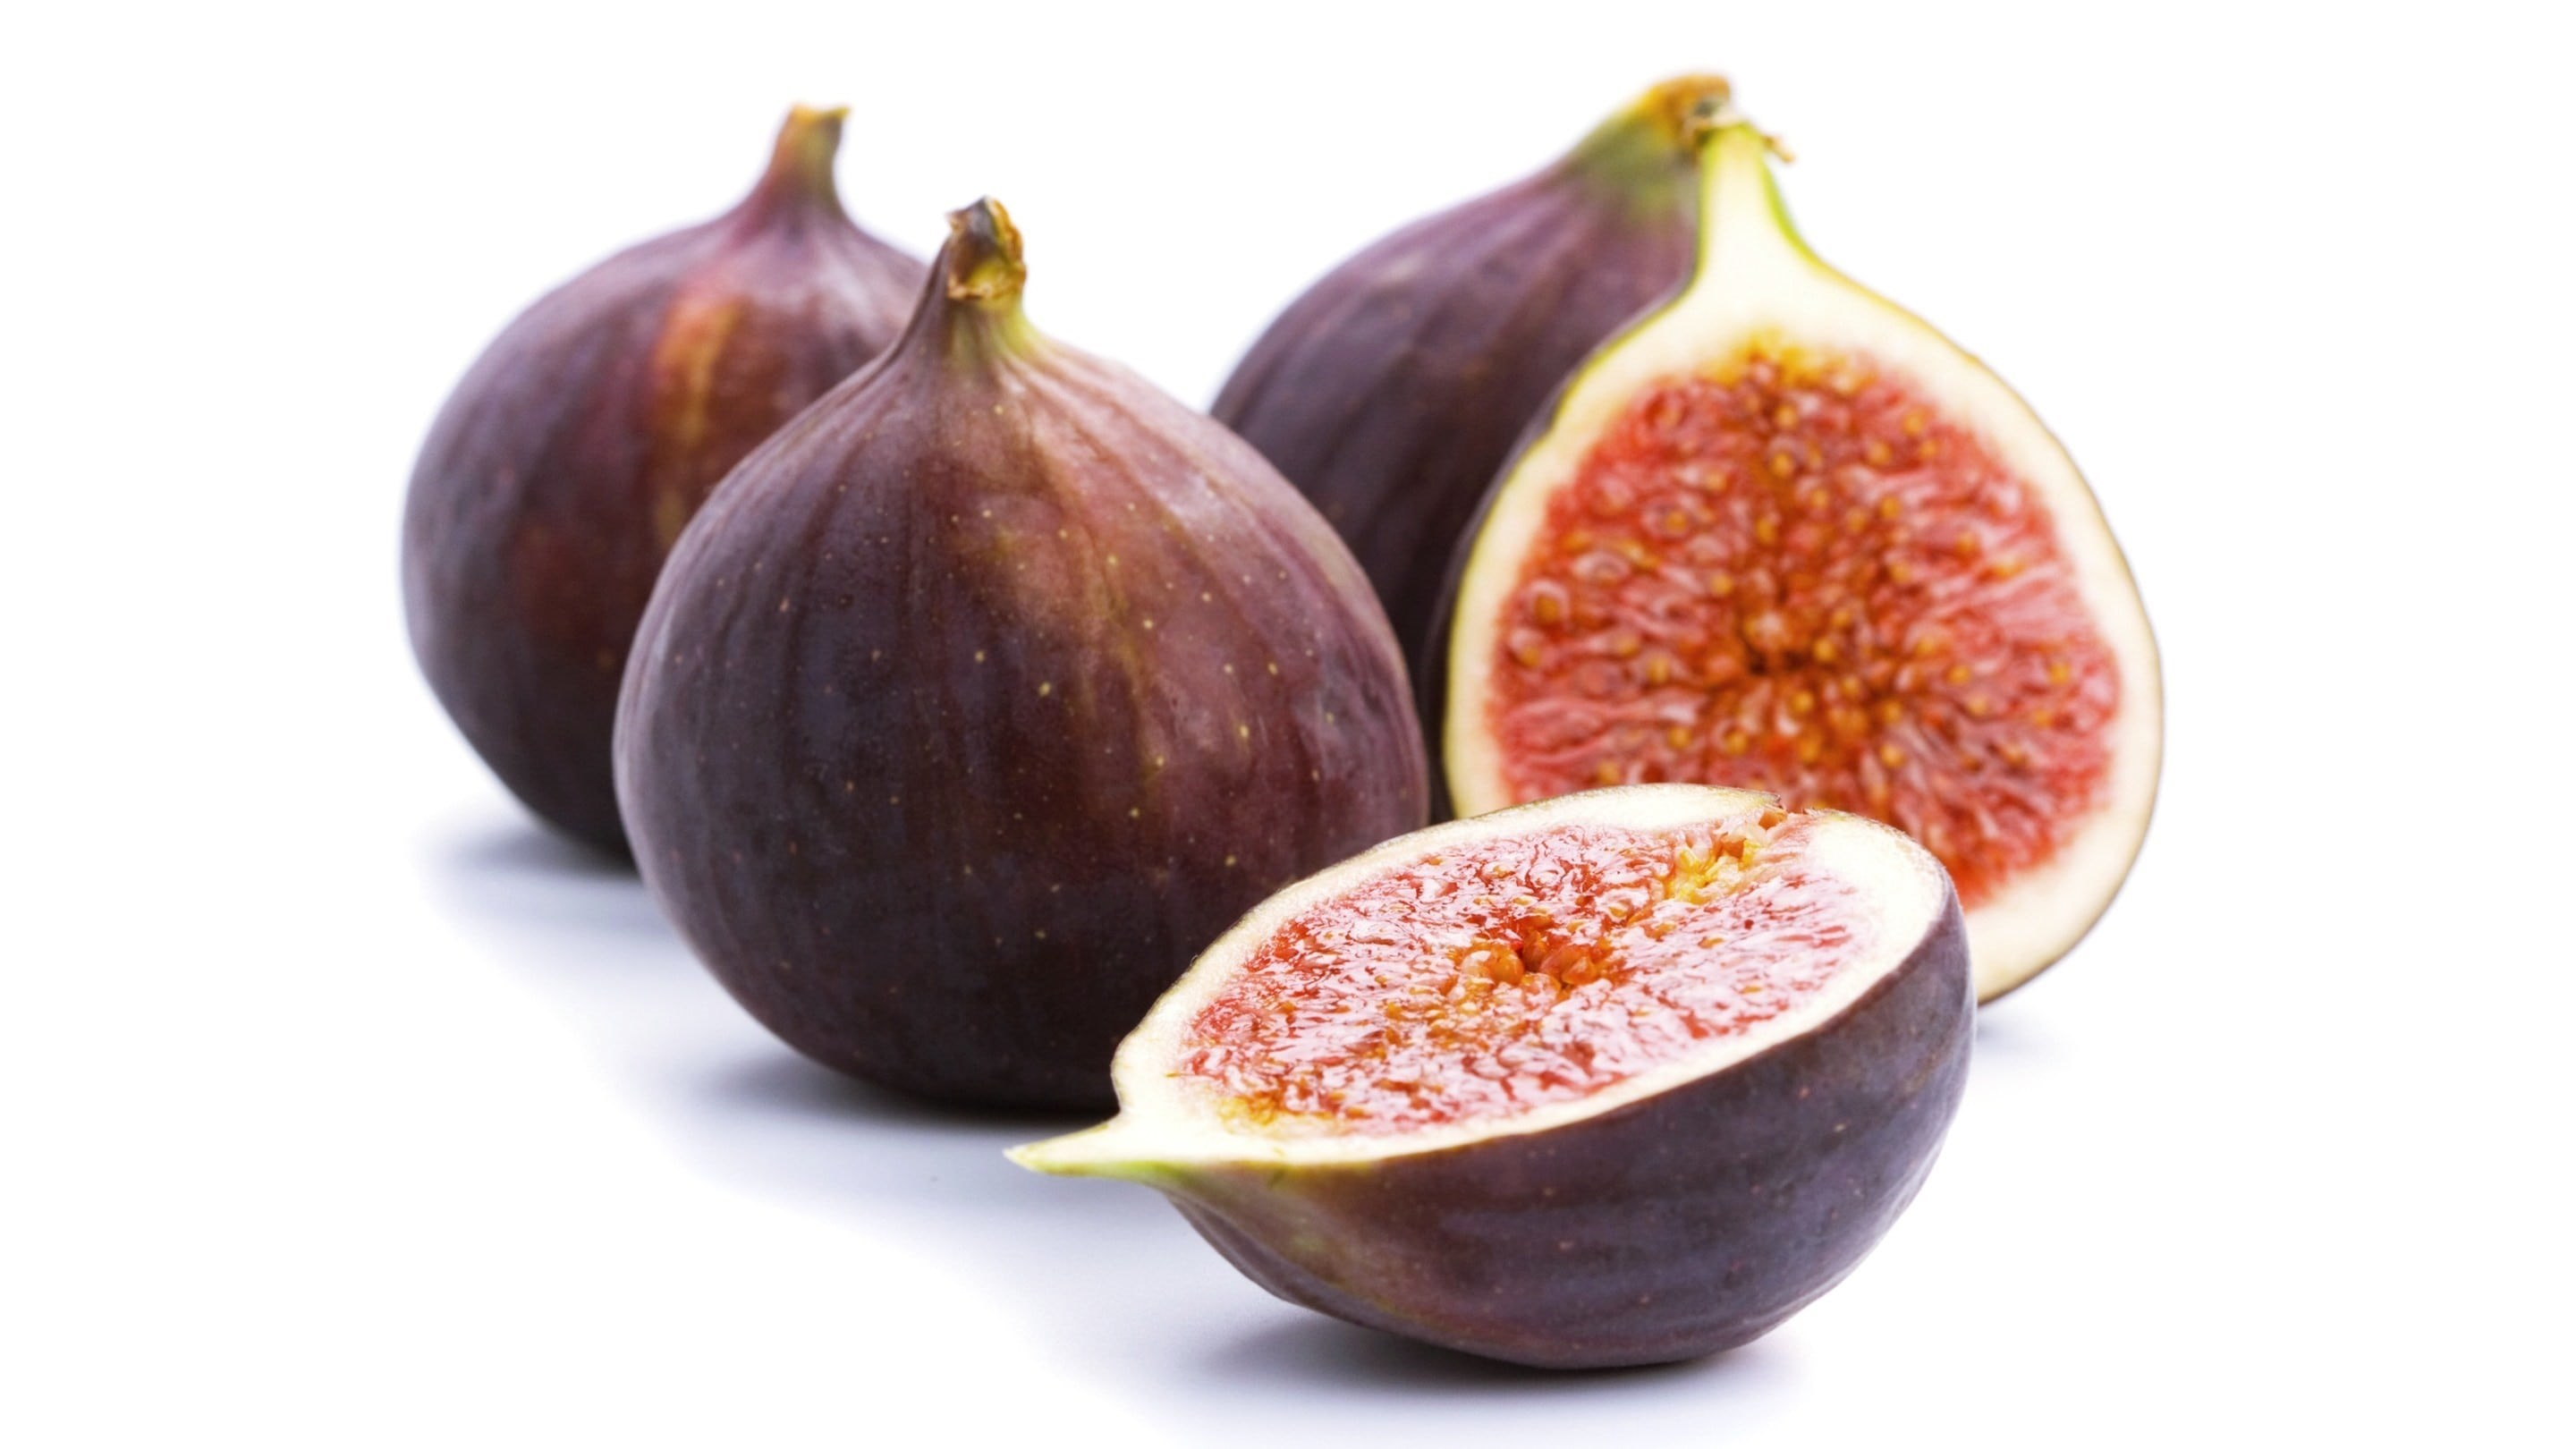 Figs widescreen for desktop